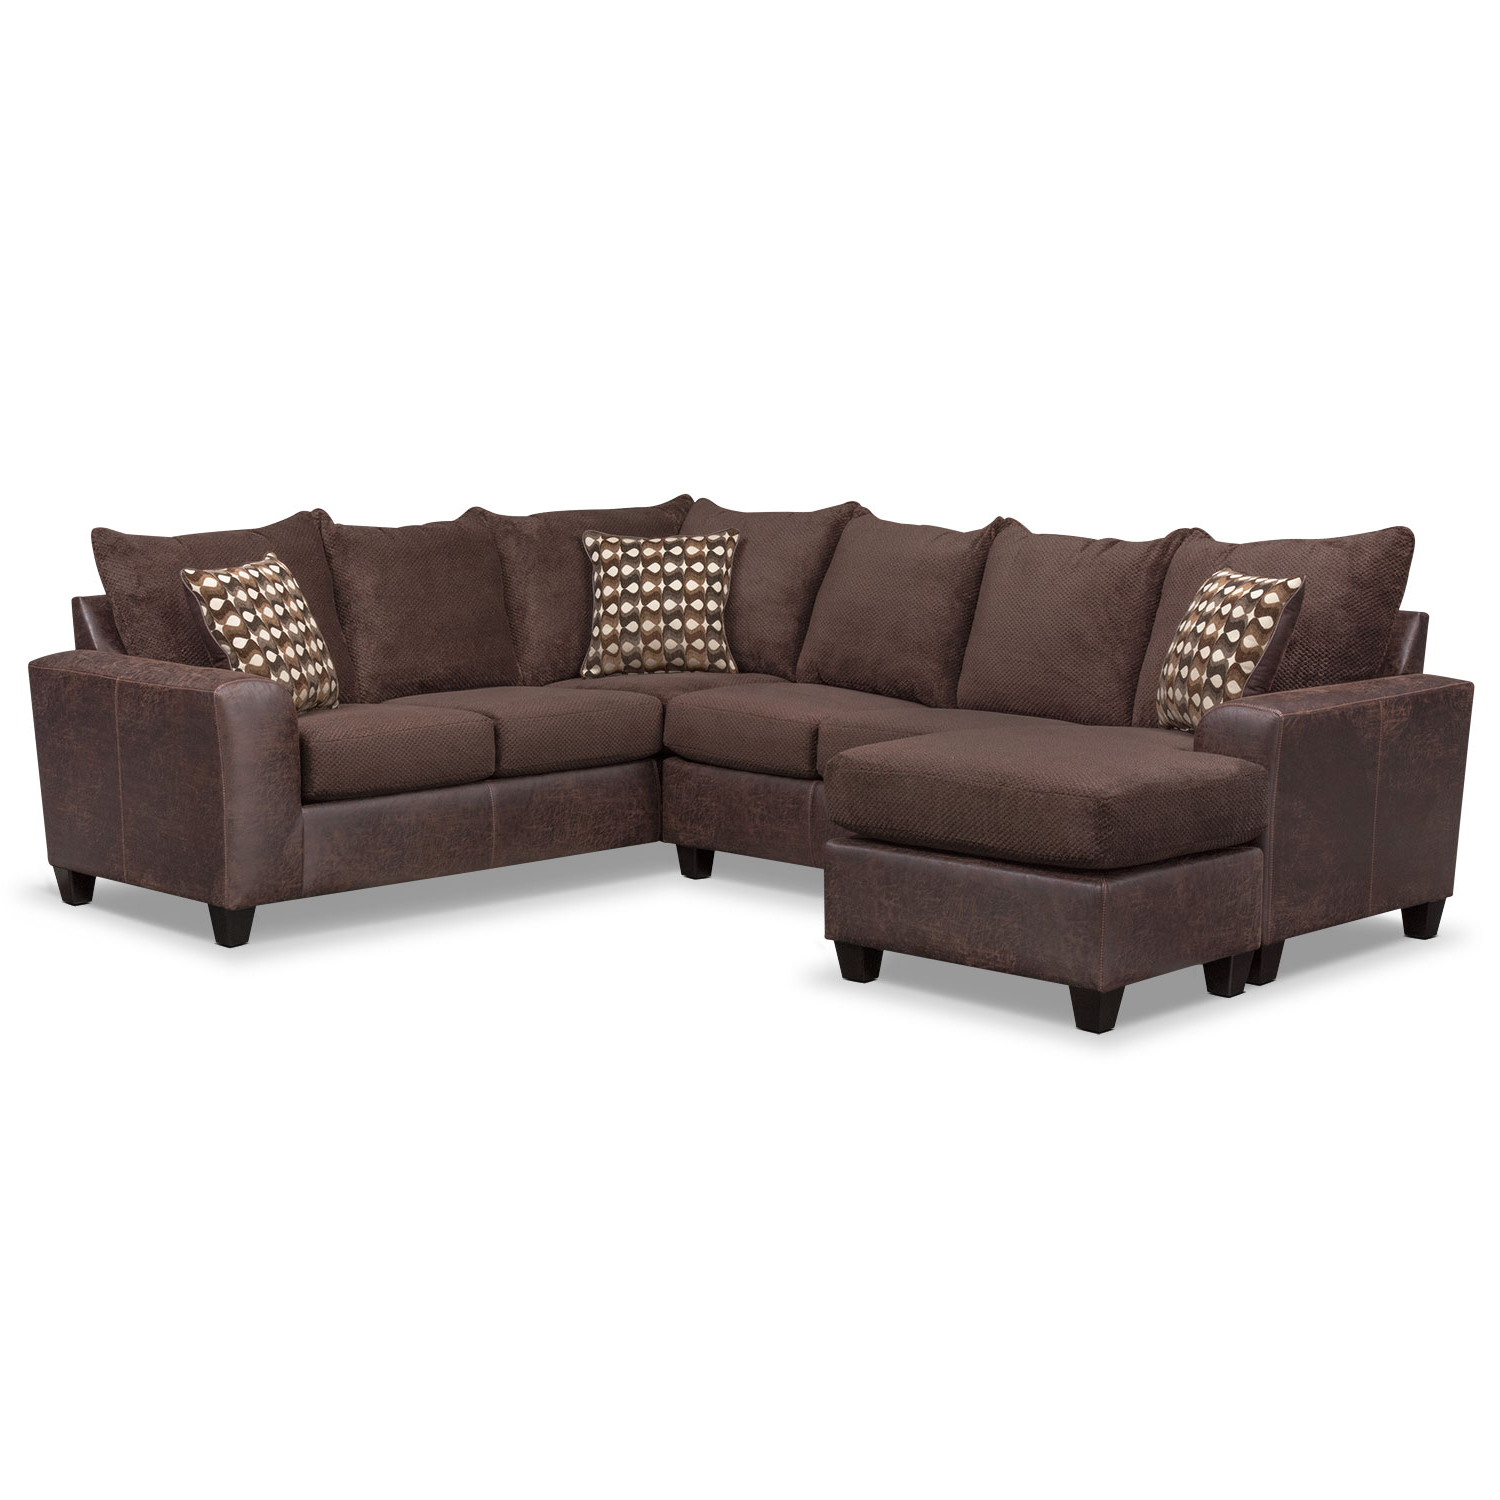 American Regarding Aurora 2 Piece Sectionals (Gallery 6 of 20)